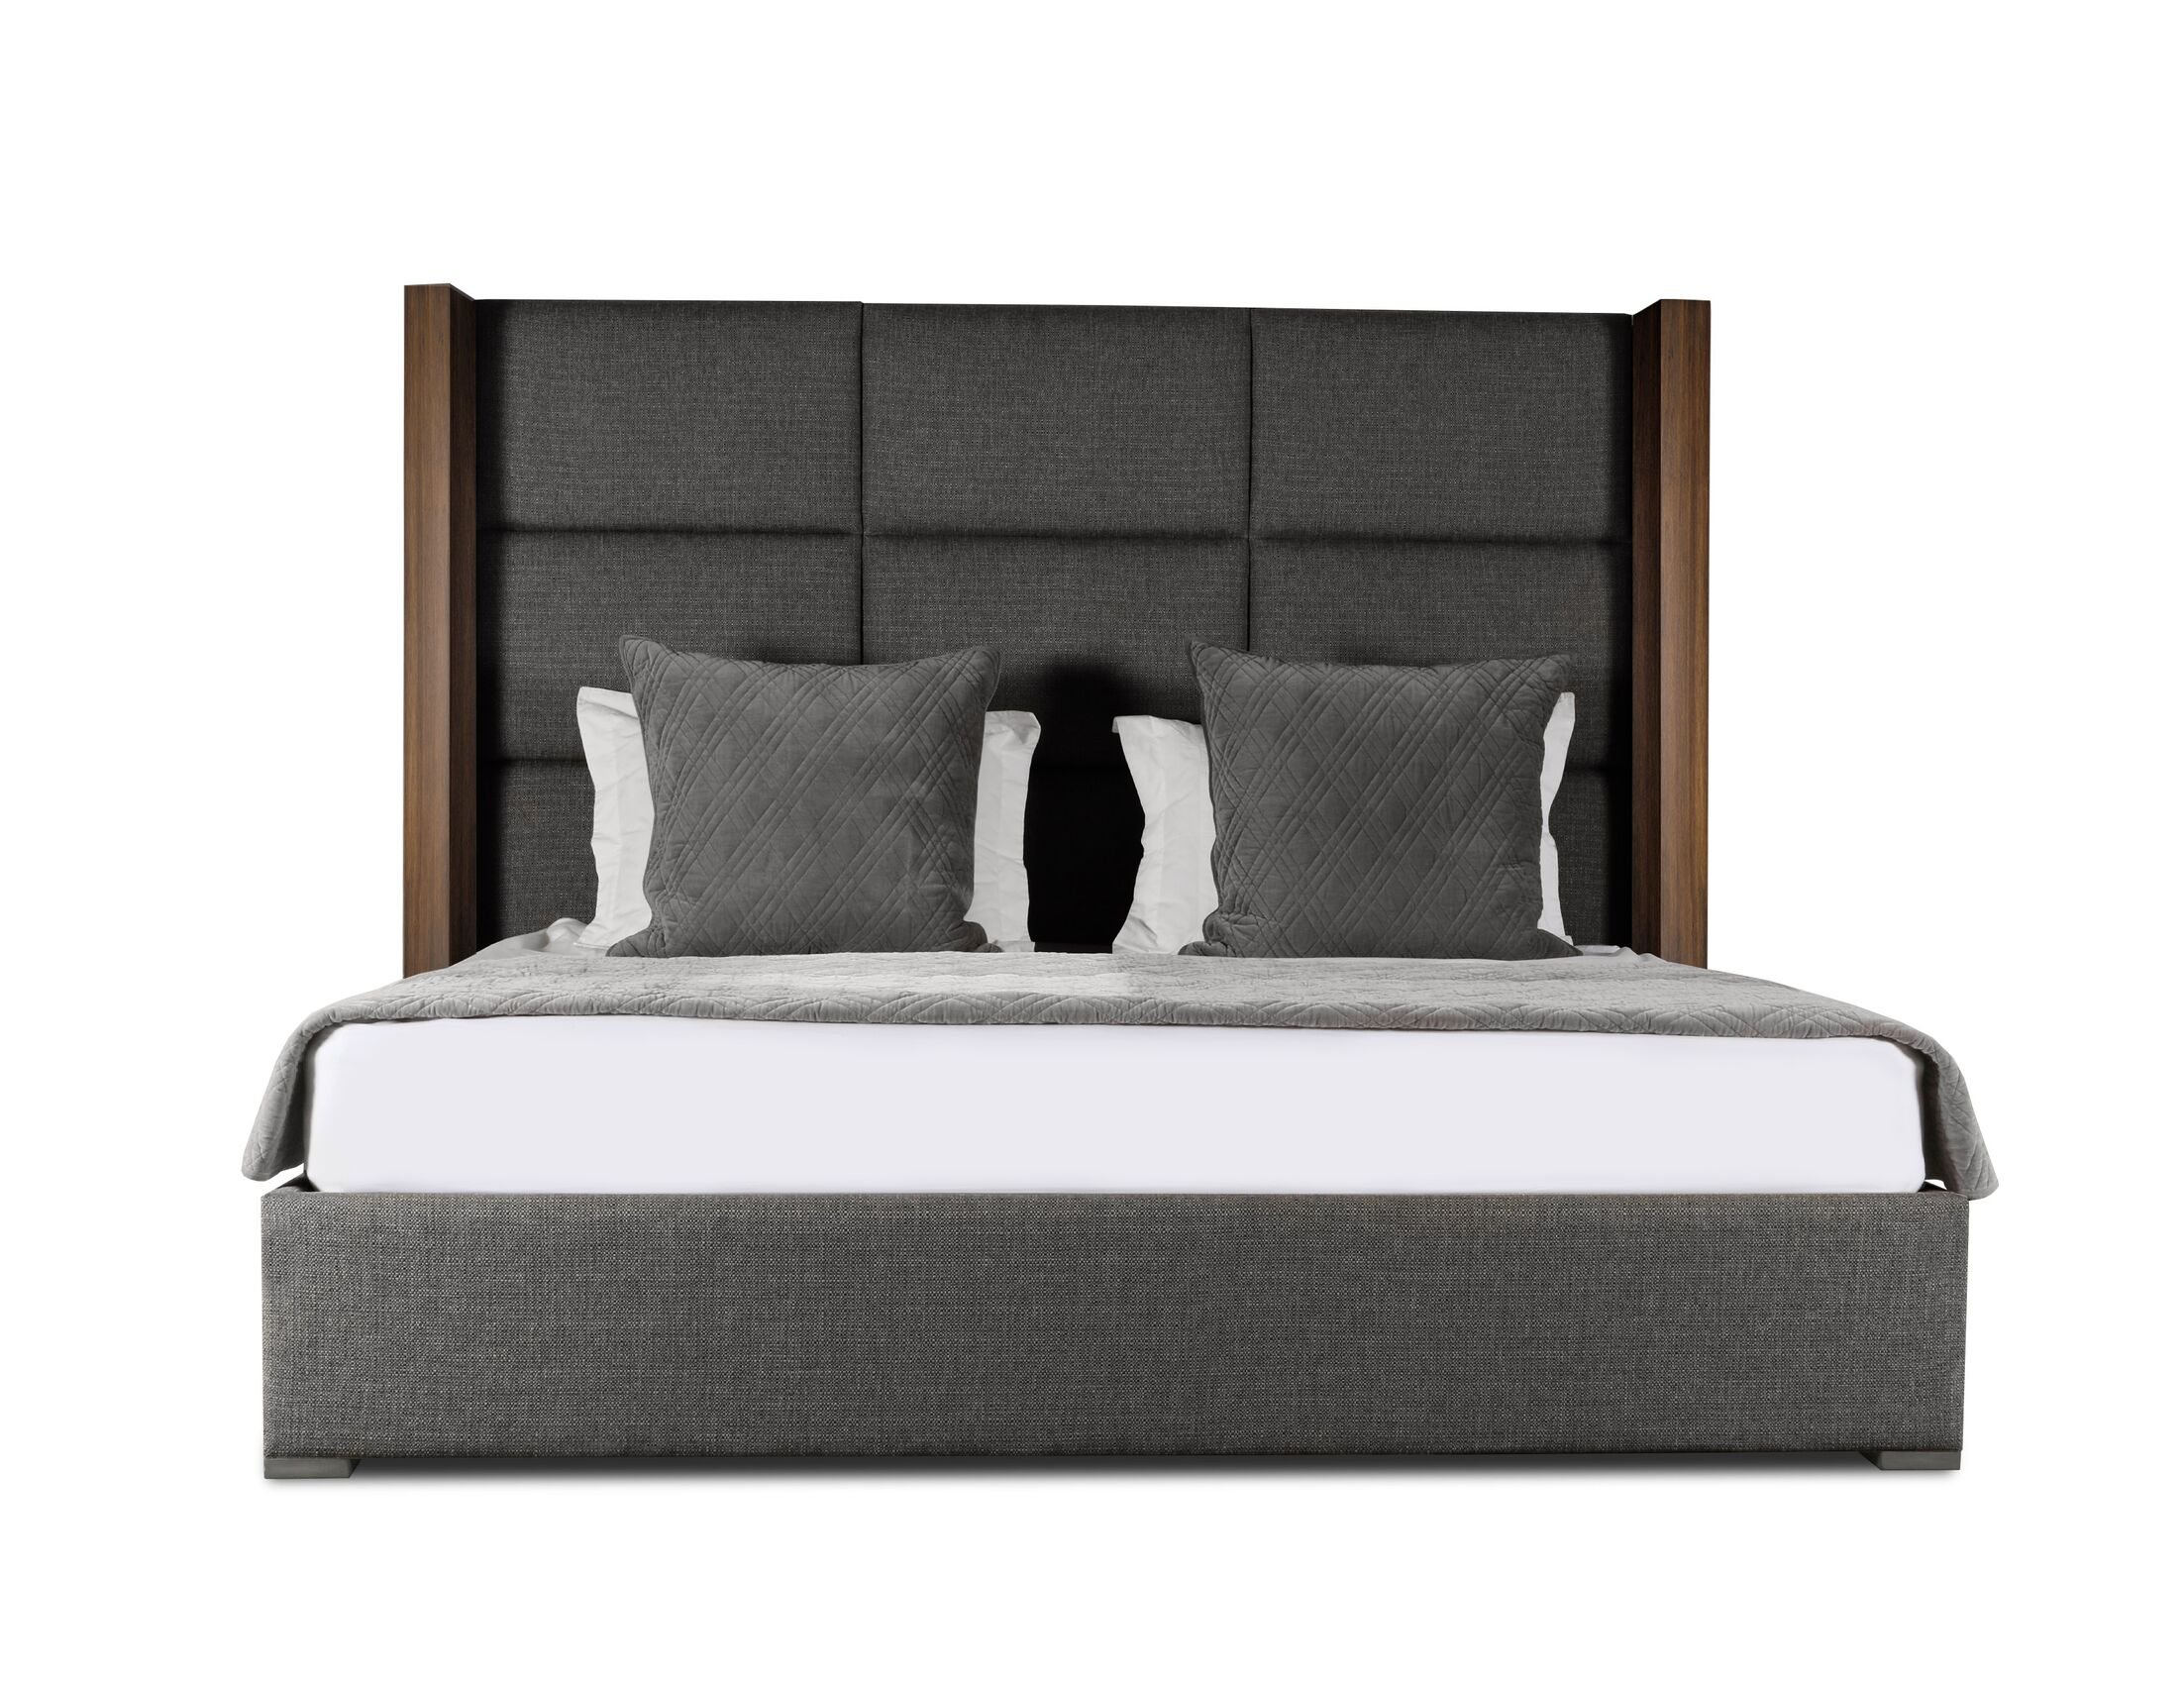 Harborcreek Upholstered Platform Bed Color: Charcoal, Size: High Height California King